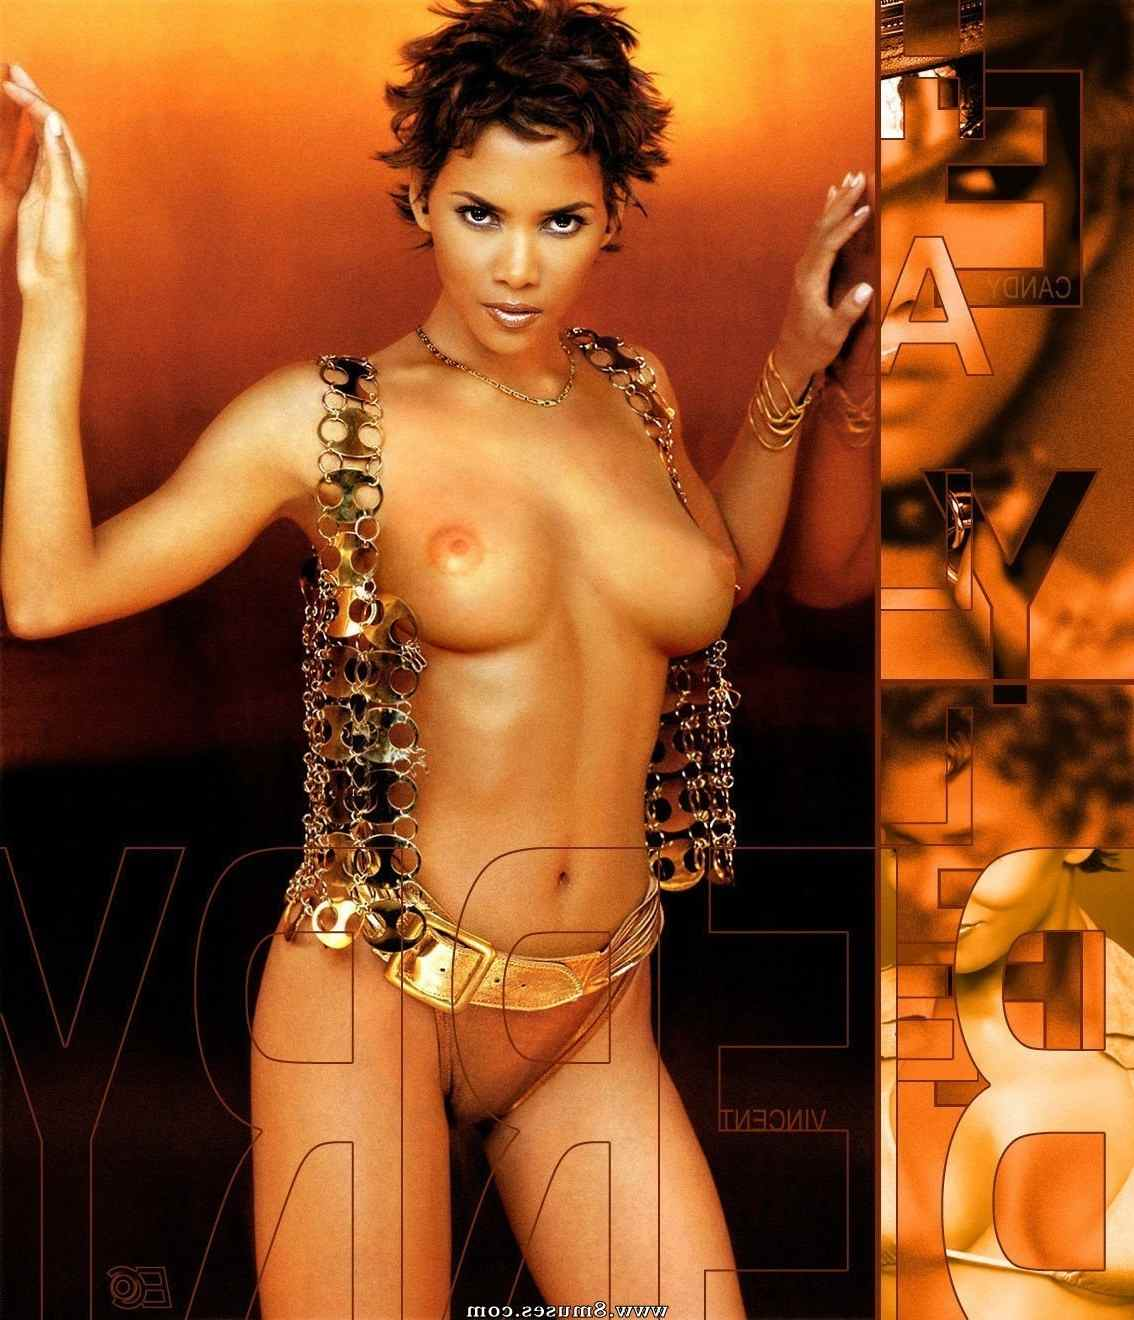 Fake-Celebrities-Sex-Pictures/Halle-Berry Halle_Berry__8muses_-_Sex_and_Porn_Comics_31.jpg